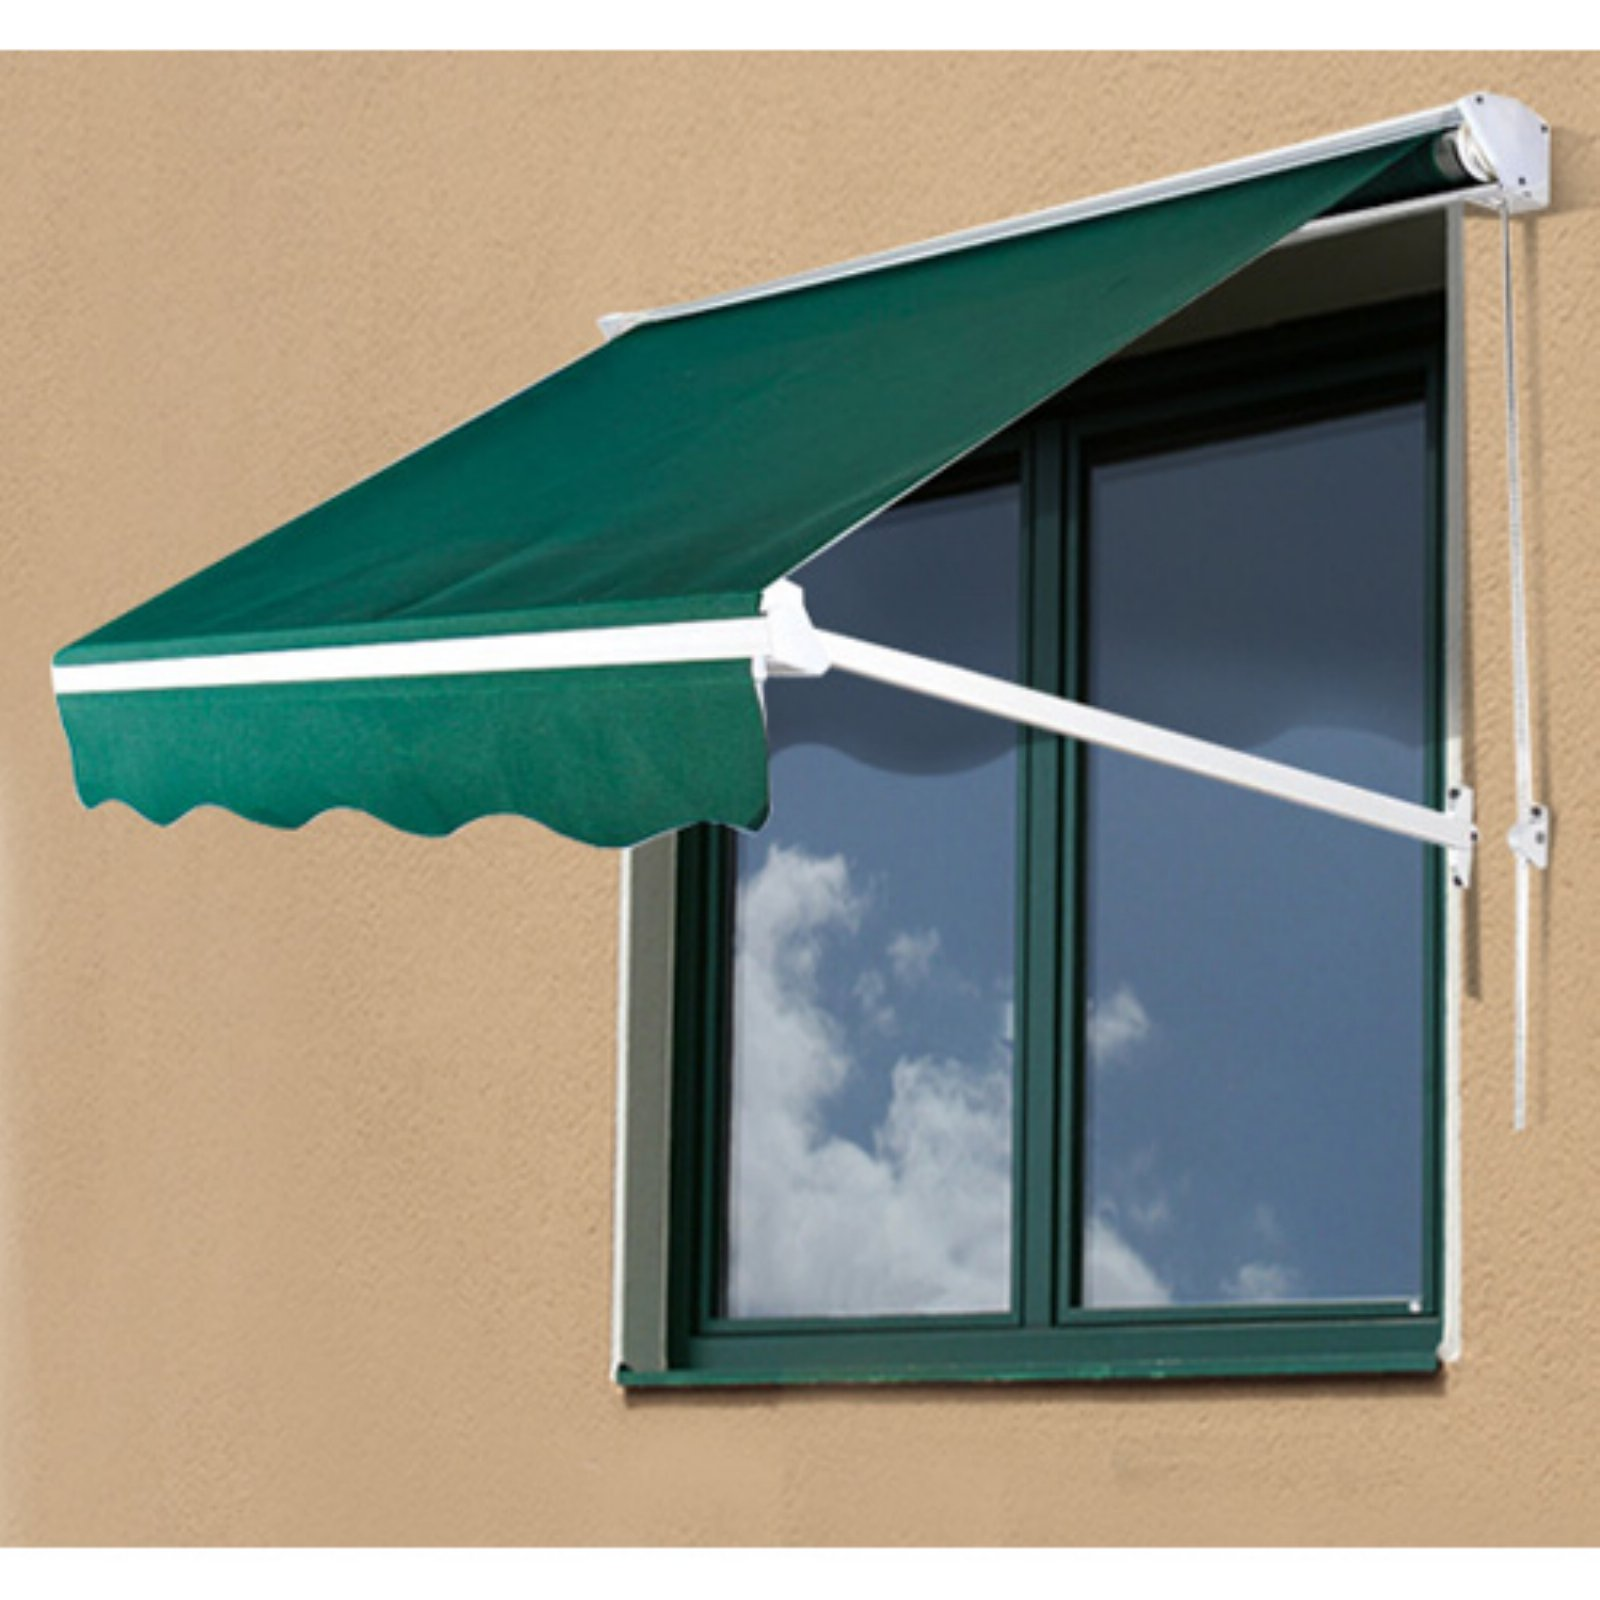 Outsunny 4 ft. Drop Arm Manual Retractable Window Awning